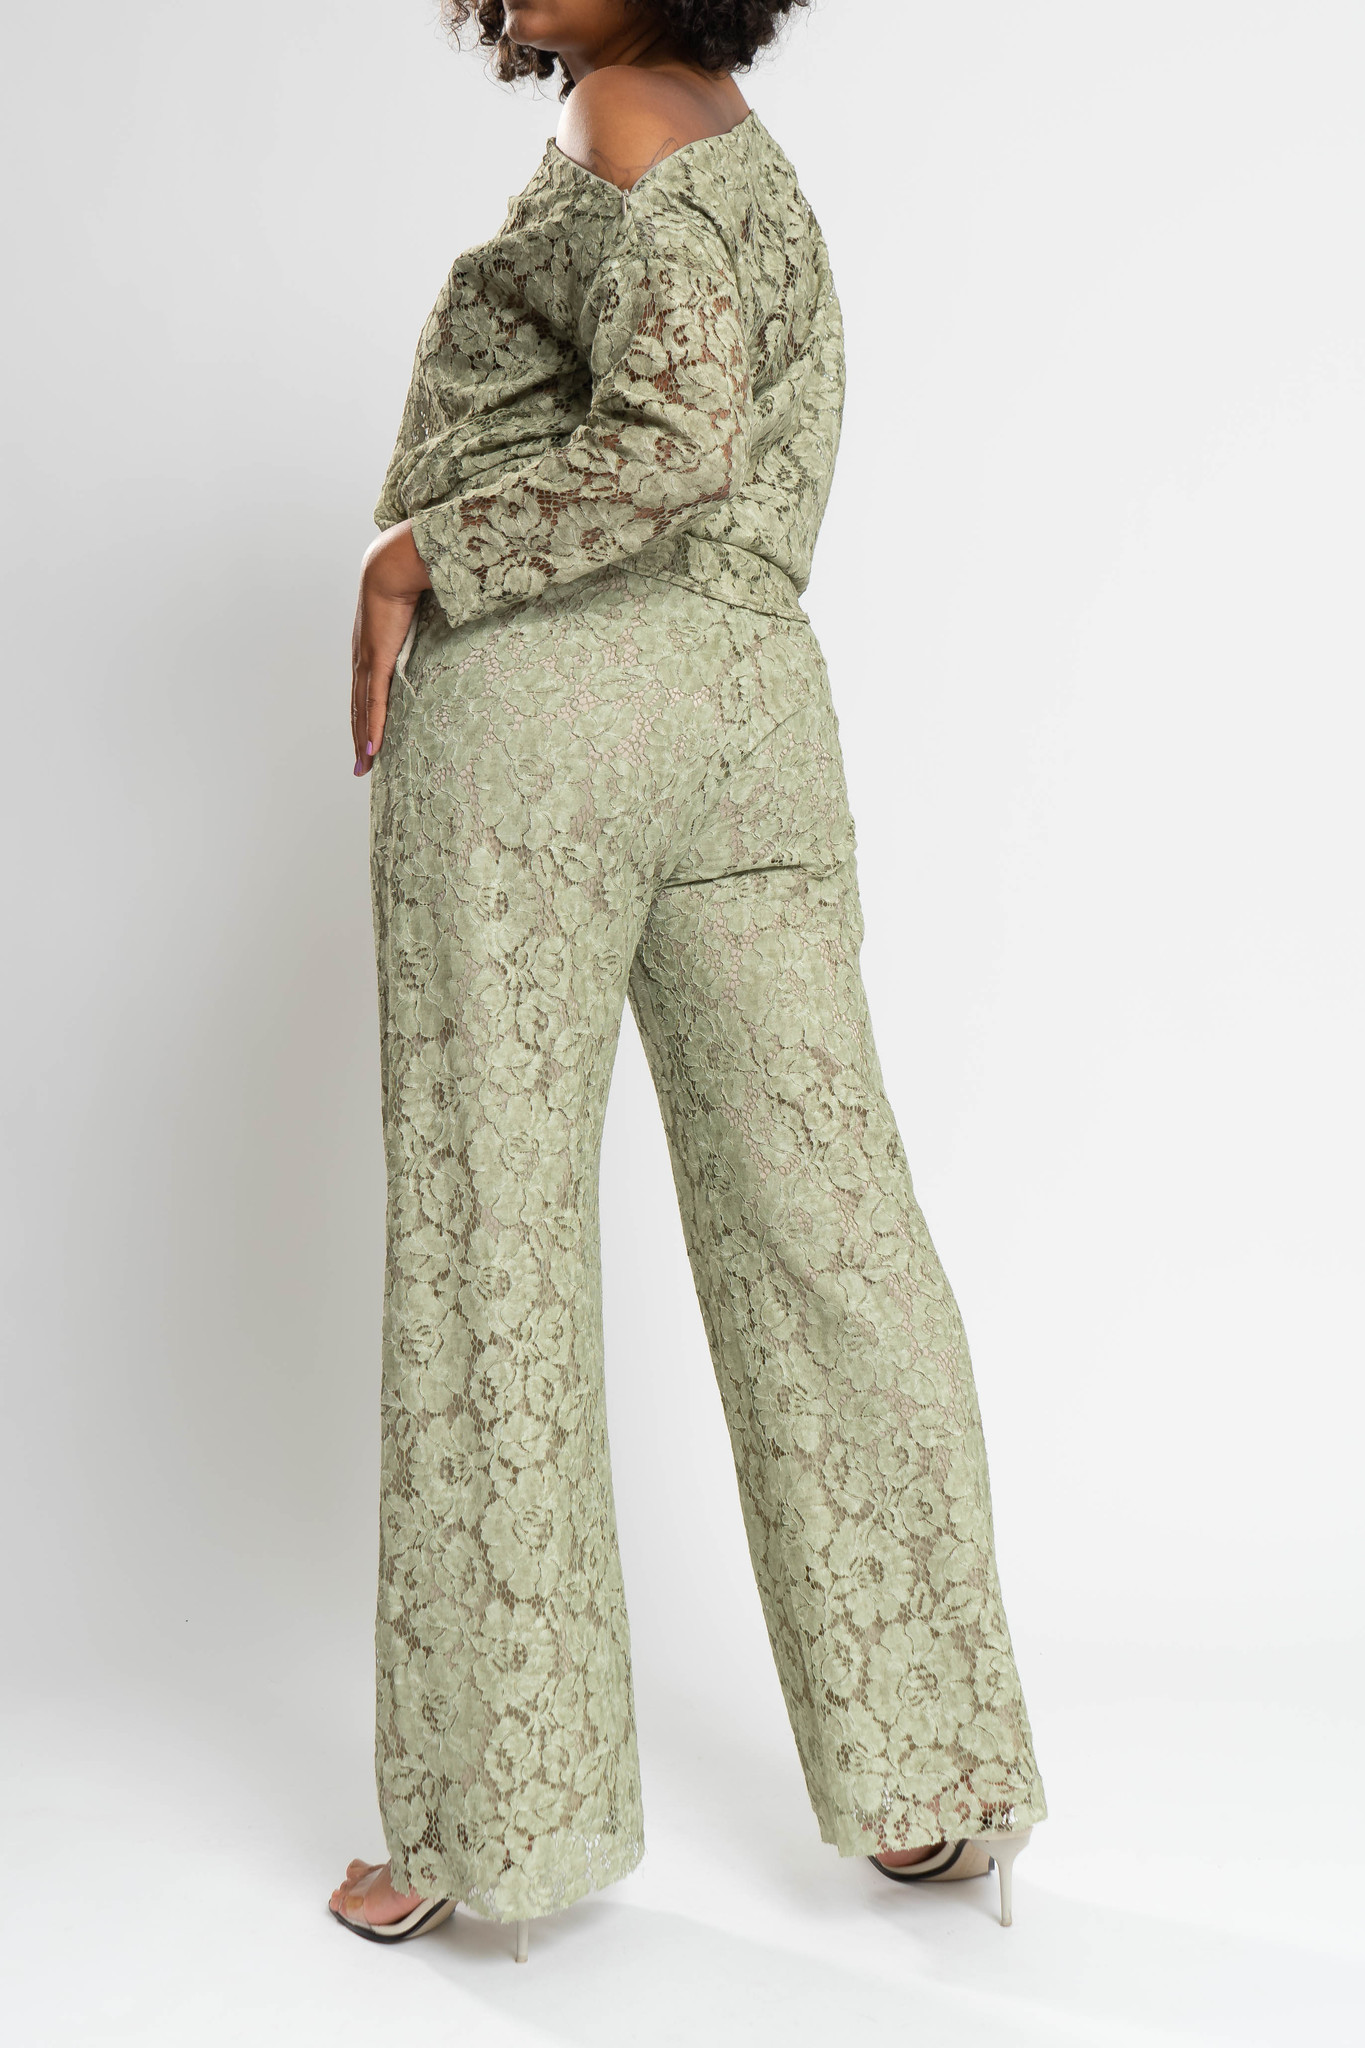 TAINA Lace Trousers in Polyester-2